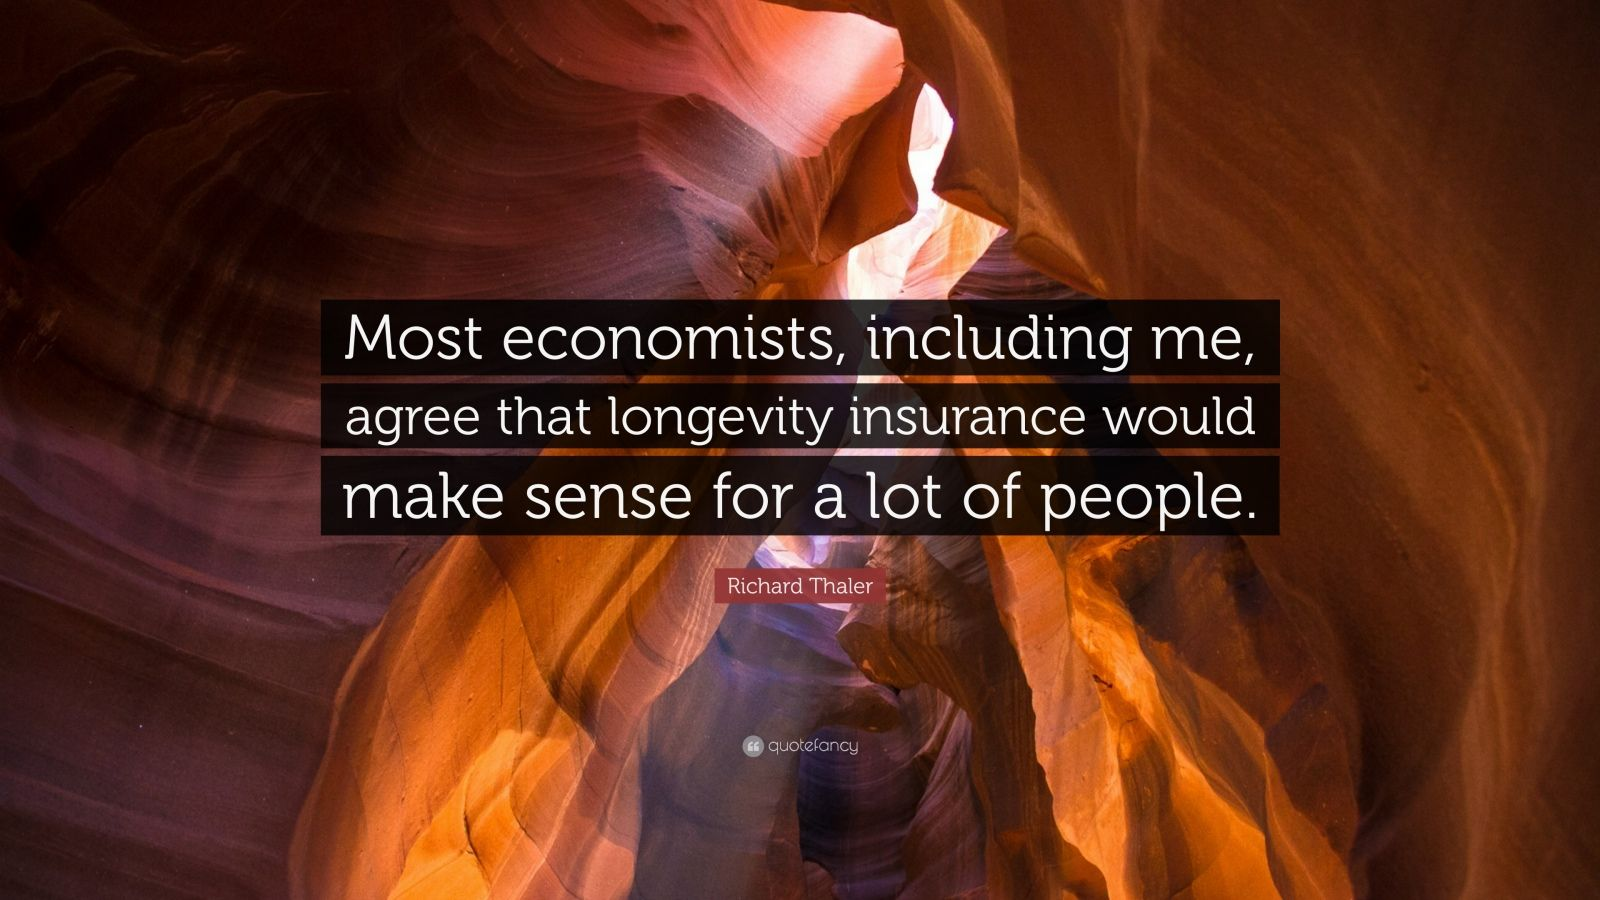 """Richard Thaler Quote: """"Most economists, including me, agree that longevity insurance would make sense for a lot of people."""""""